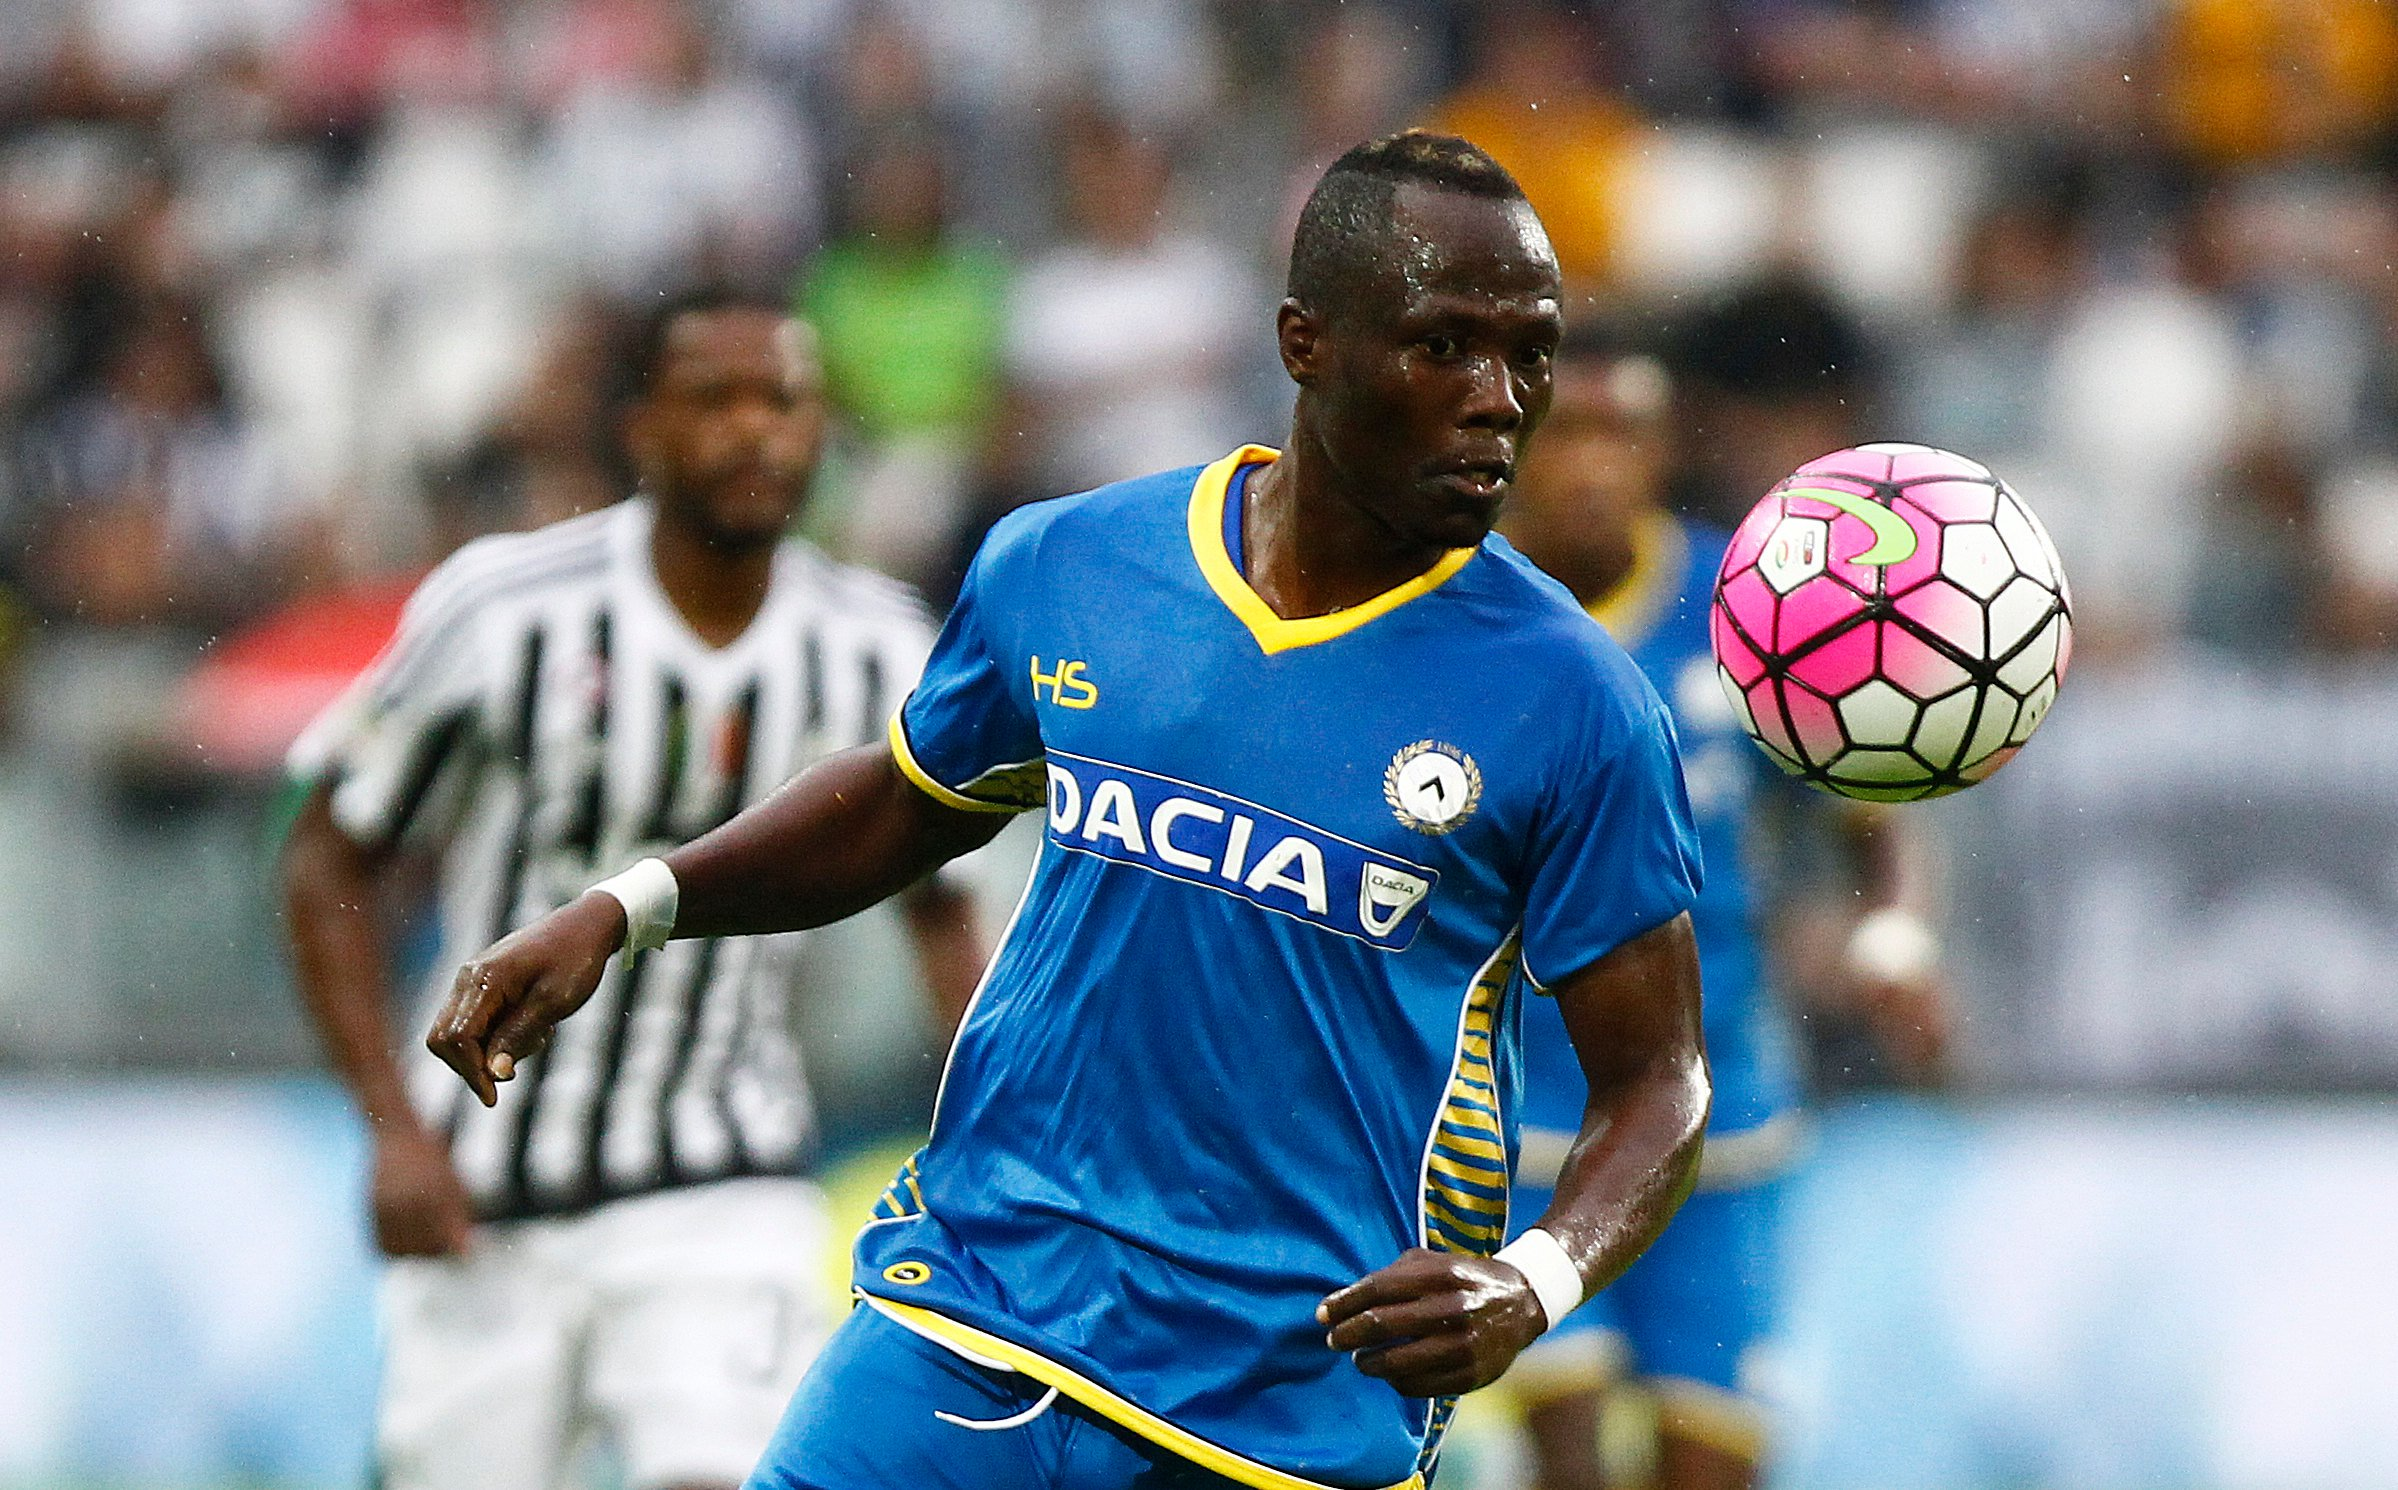 Bursaspor now leading the race to sign Udinese midfielder Emmanuel Agyemang Badu